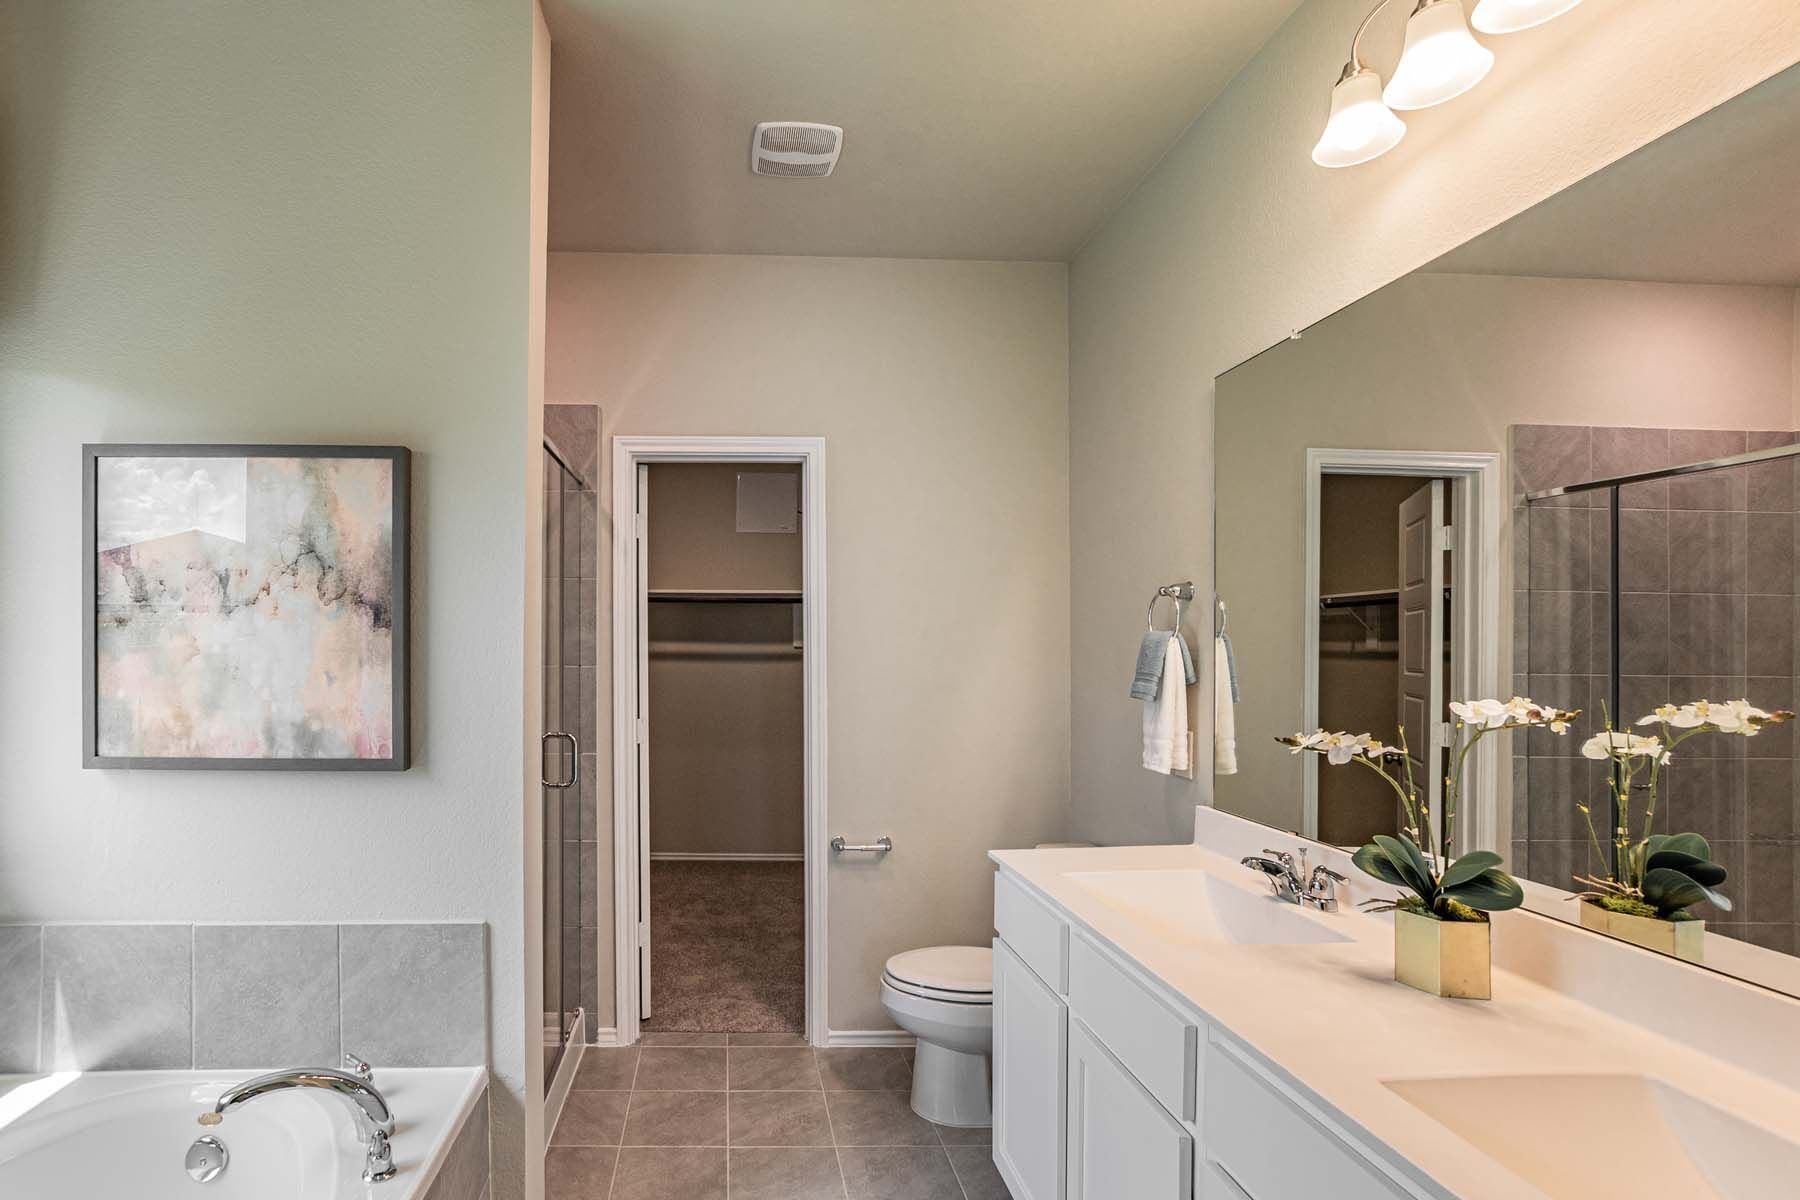 Bathroom featured in the Dogwood By M/I Homes in Houston, TX